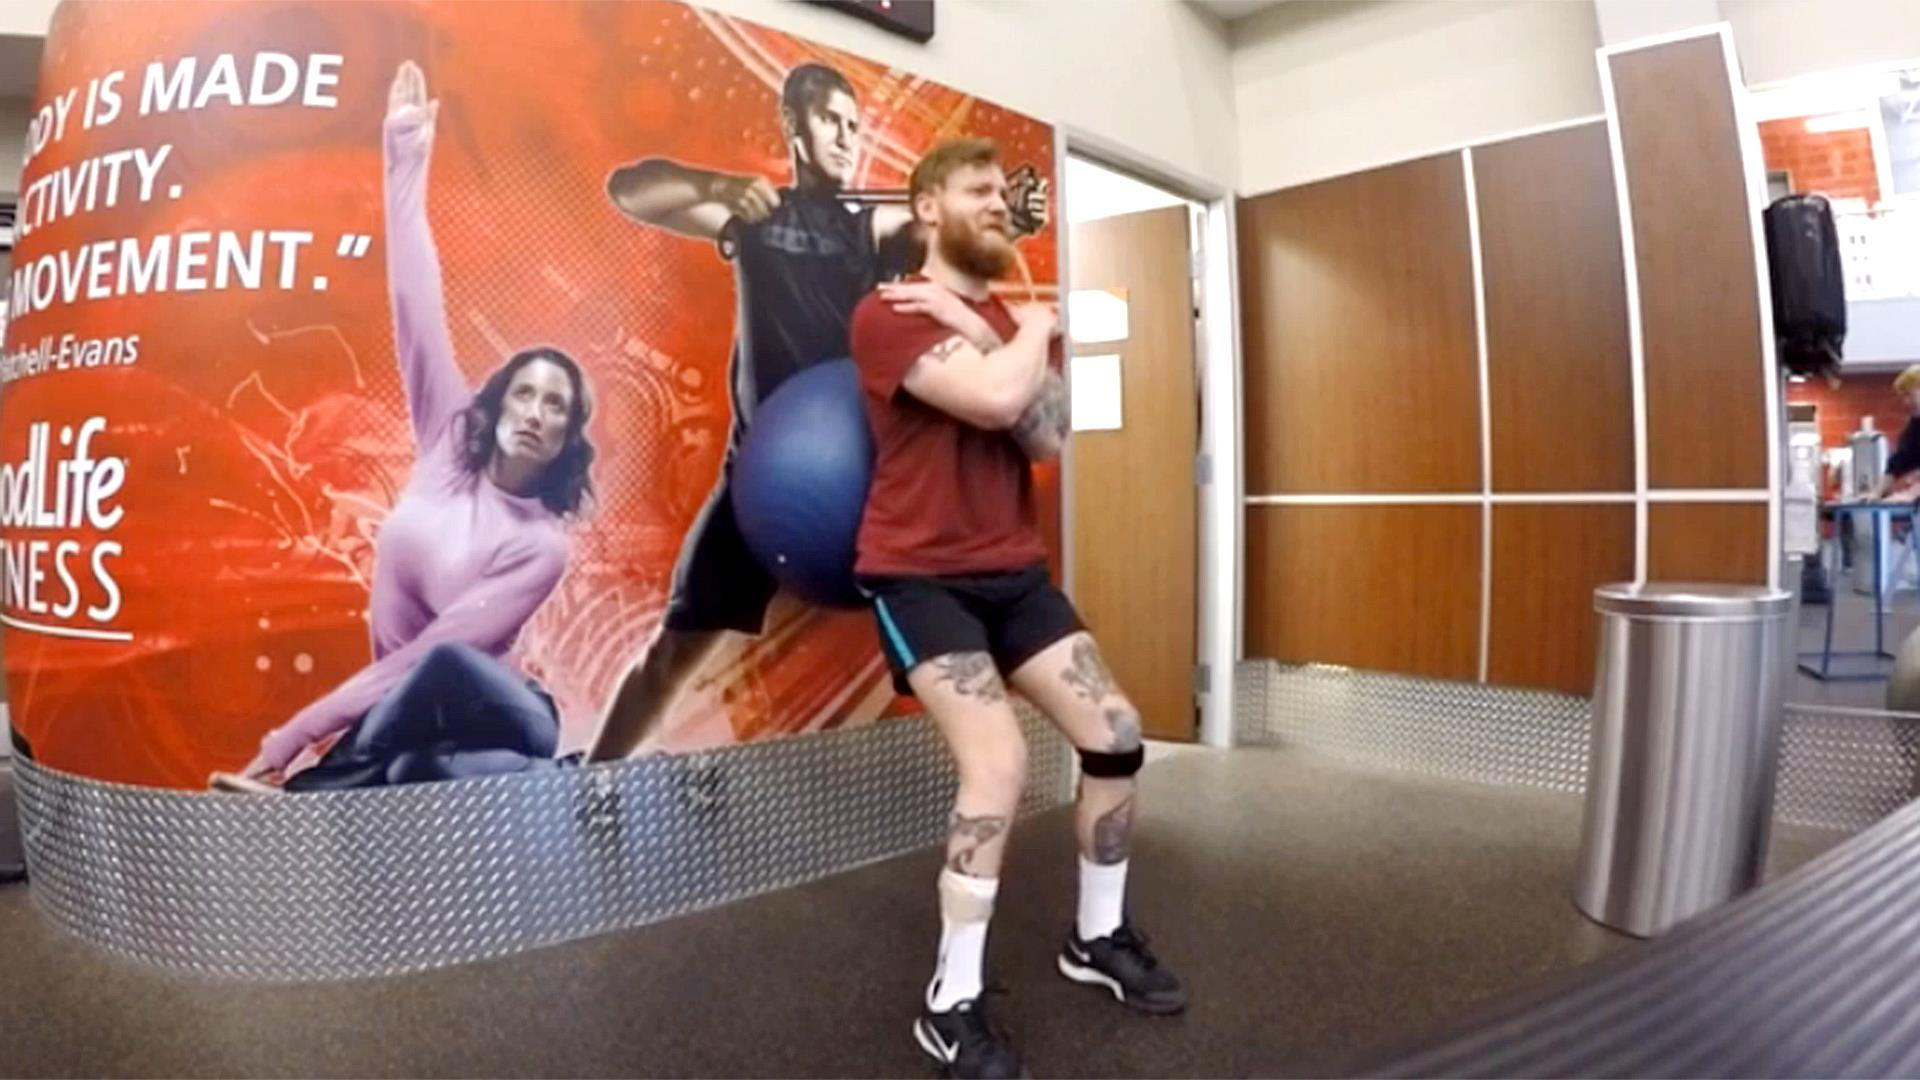 Steve Alexy bodybuilder with Cerebral Palsy. In own this